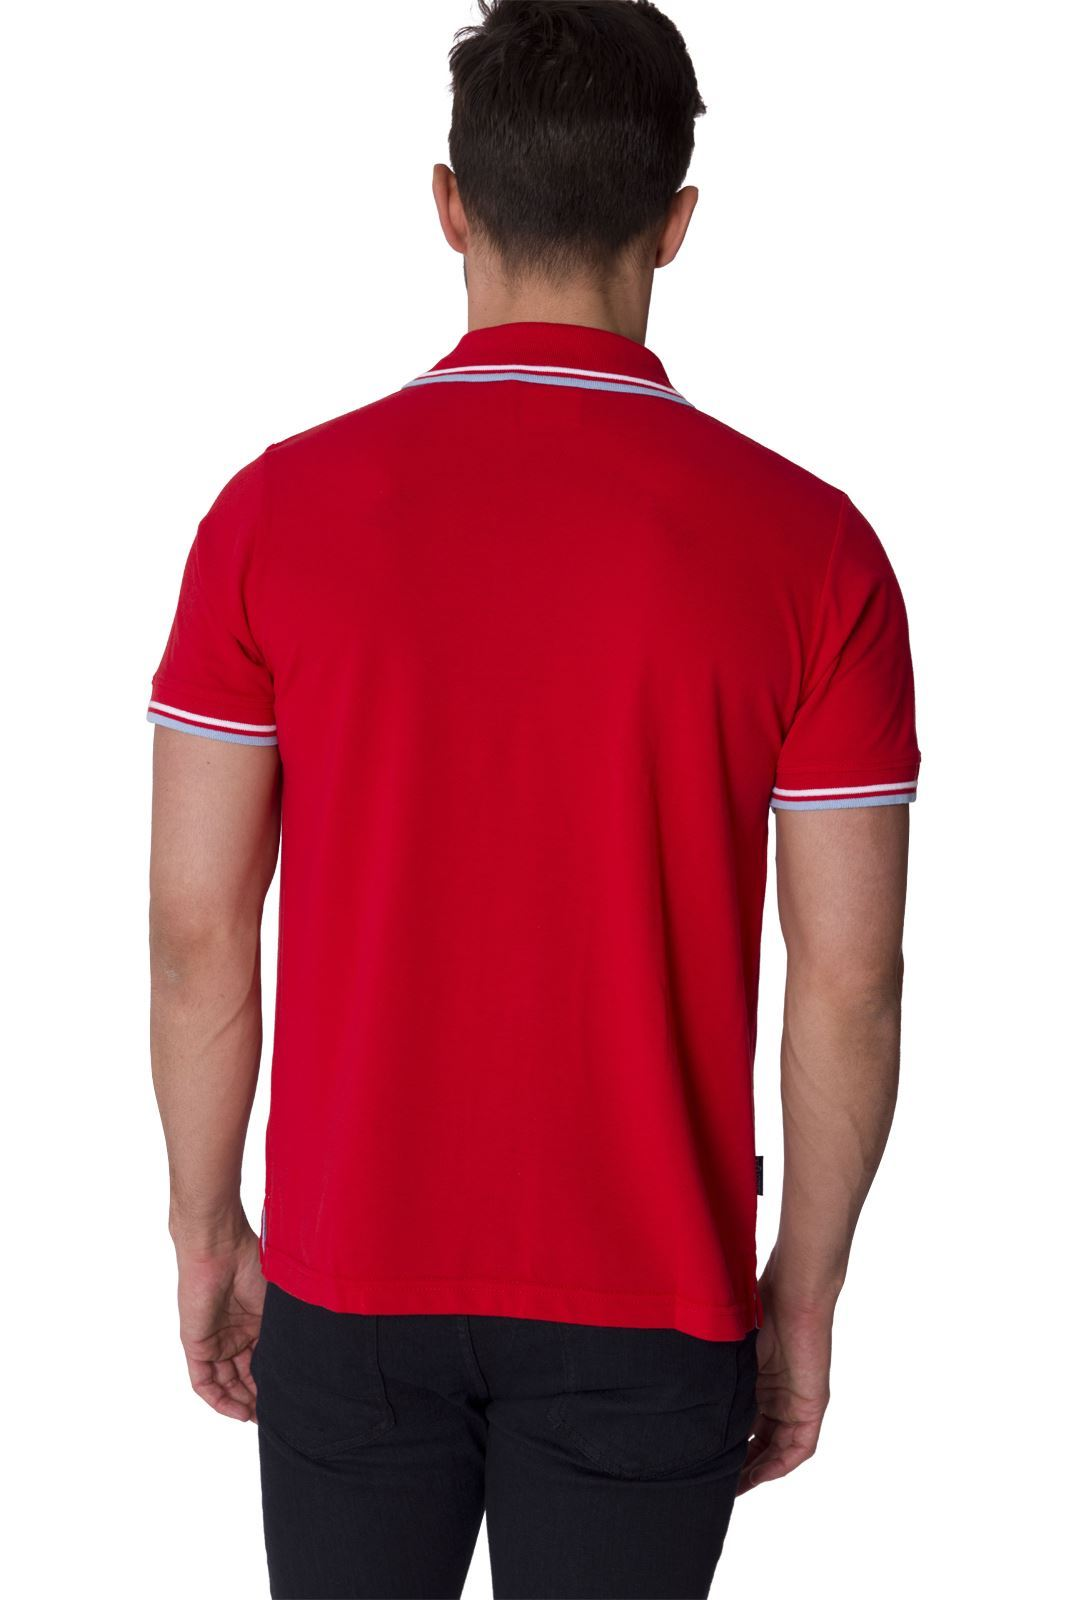 Slazenger designer new mens short sleeve collared polo tee for Mens collared t shirts